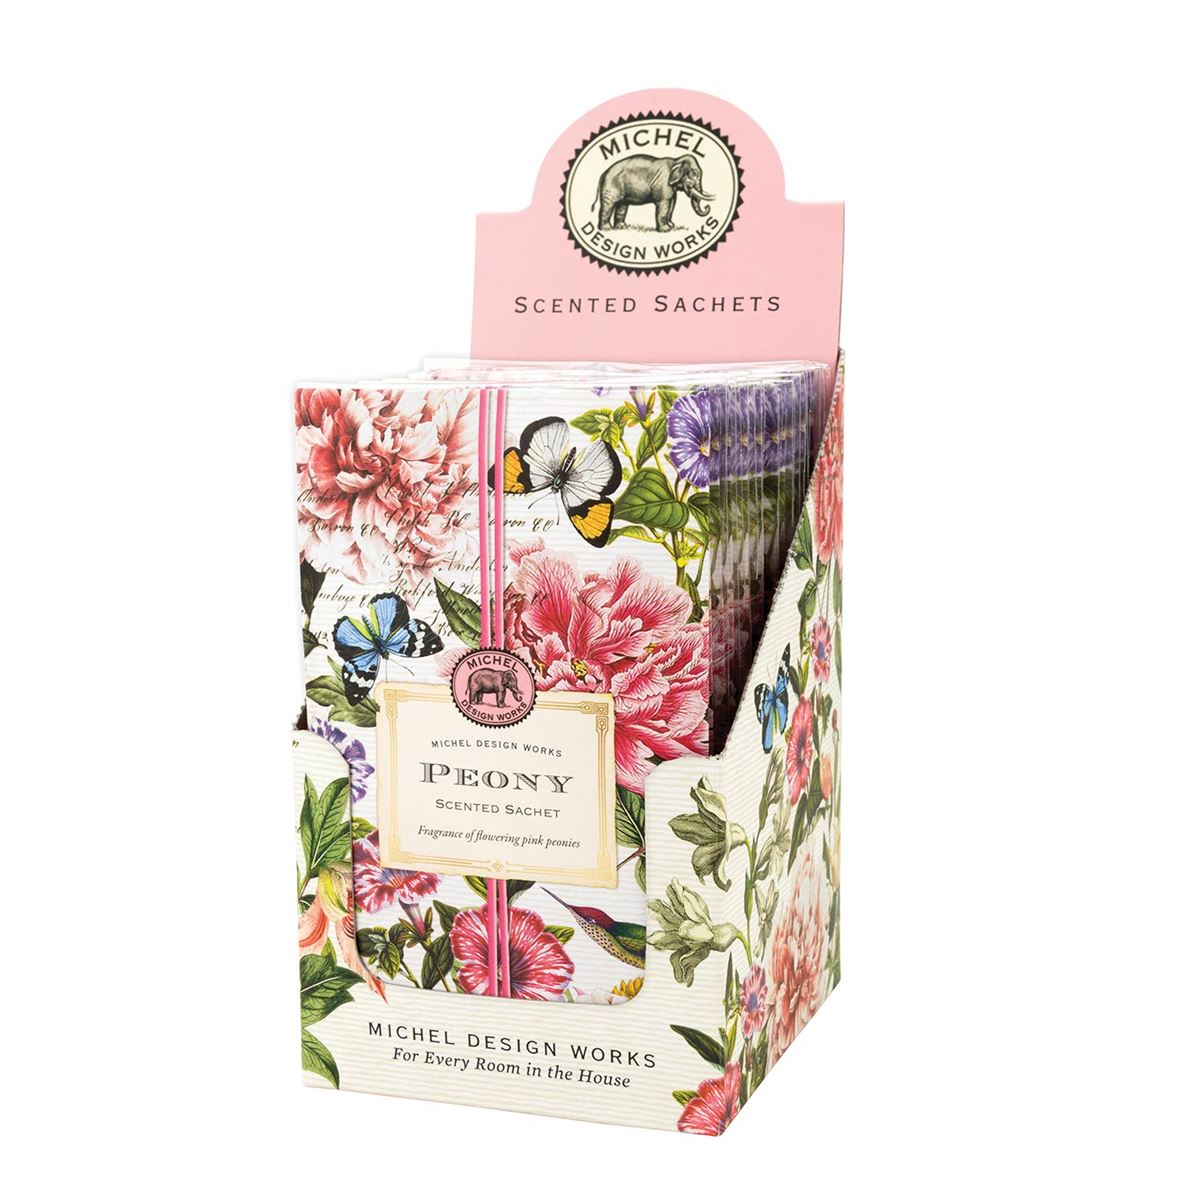 Michel Peony Scented Sachets